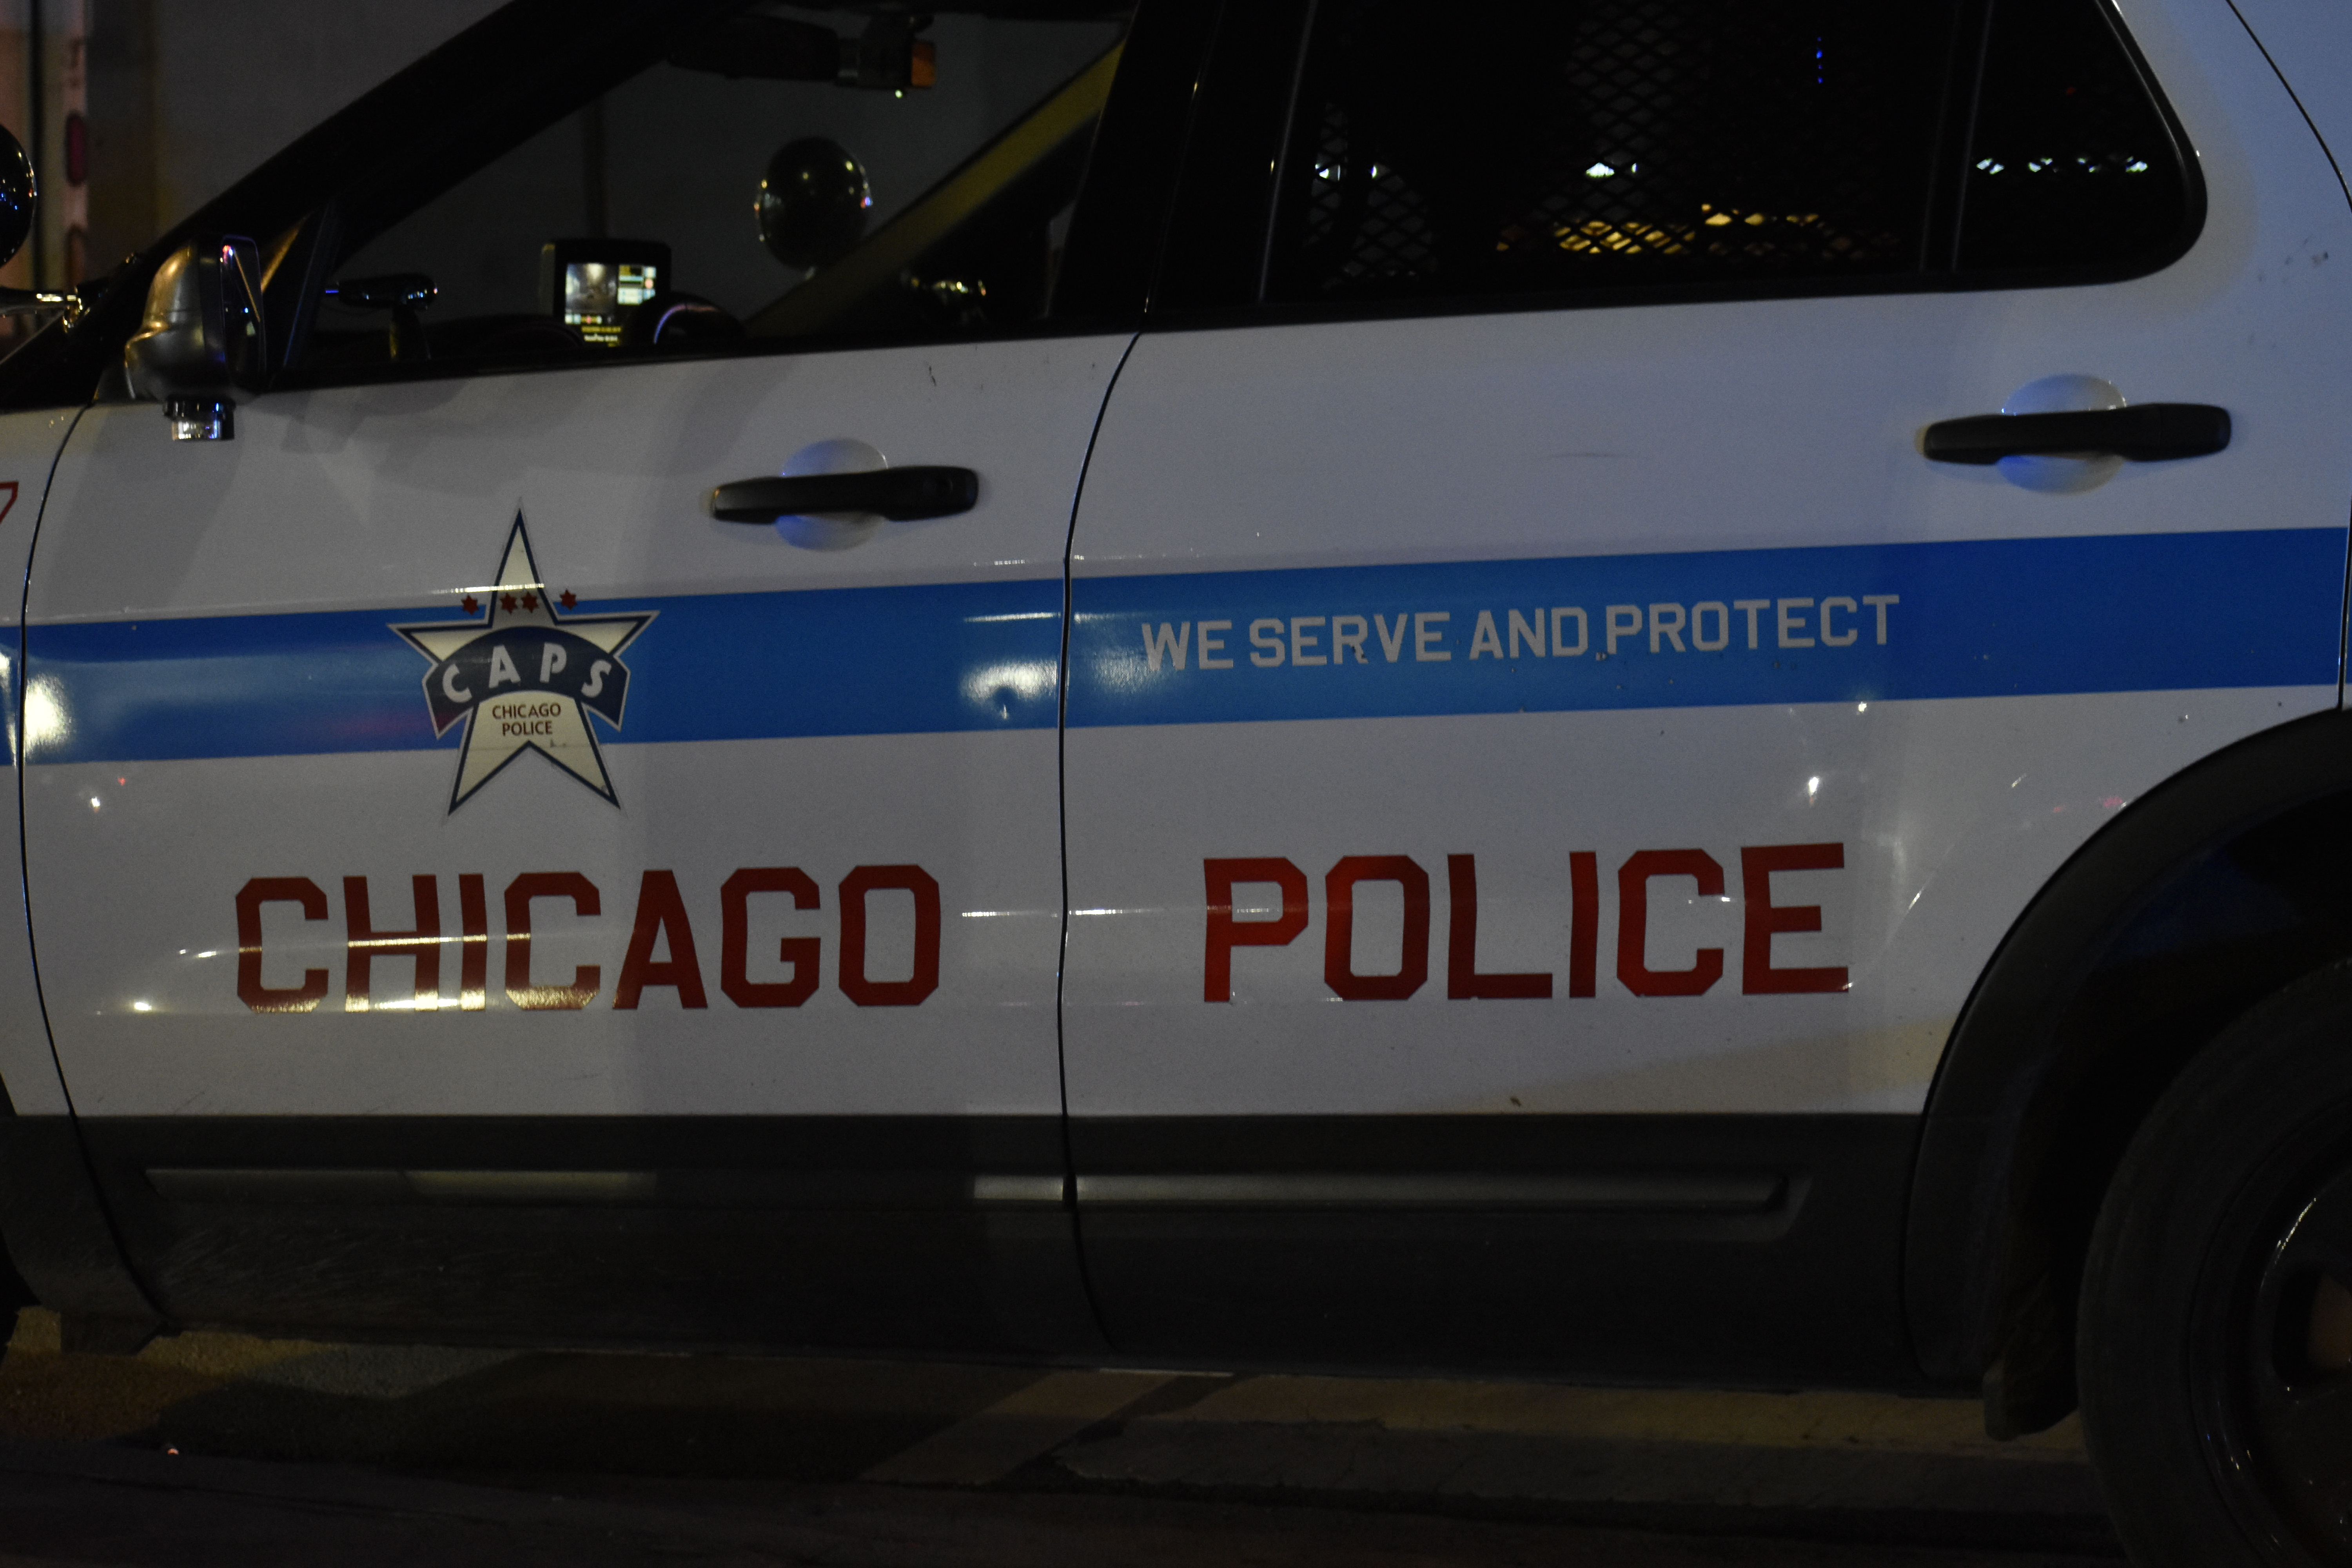 Home burglaries were reported in February and March, 2020, in West Elsdon and West Lawn.